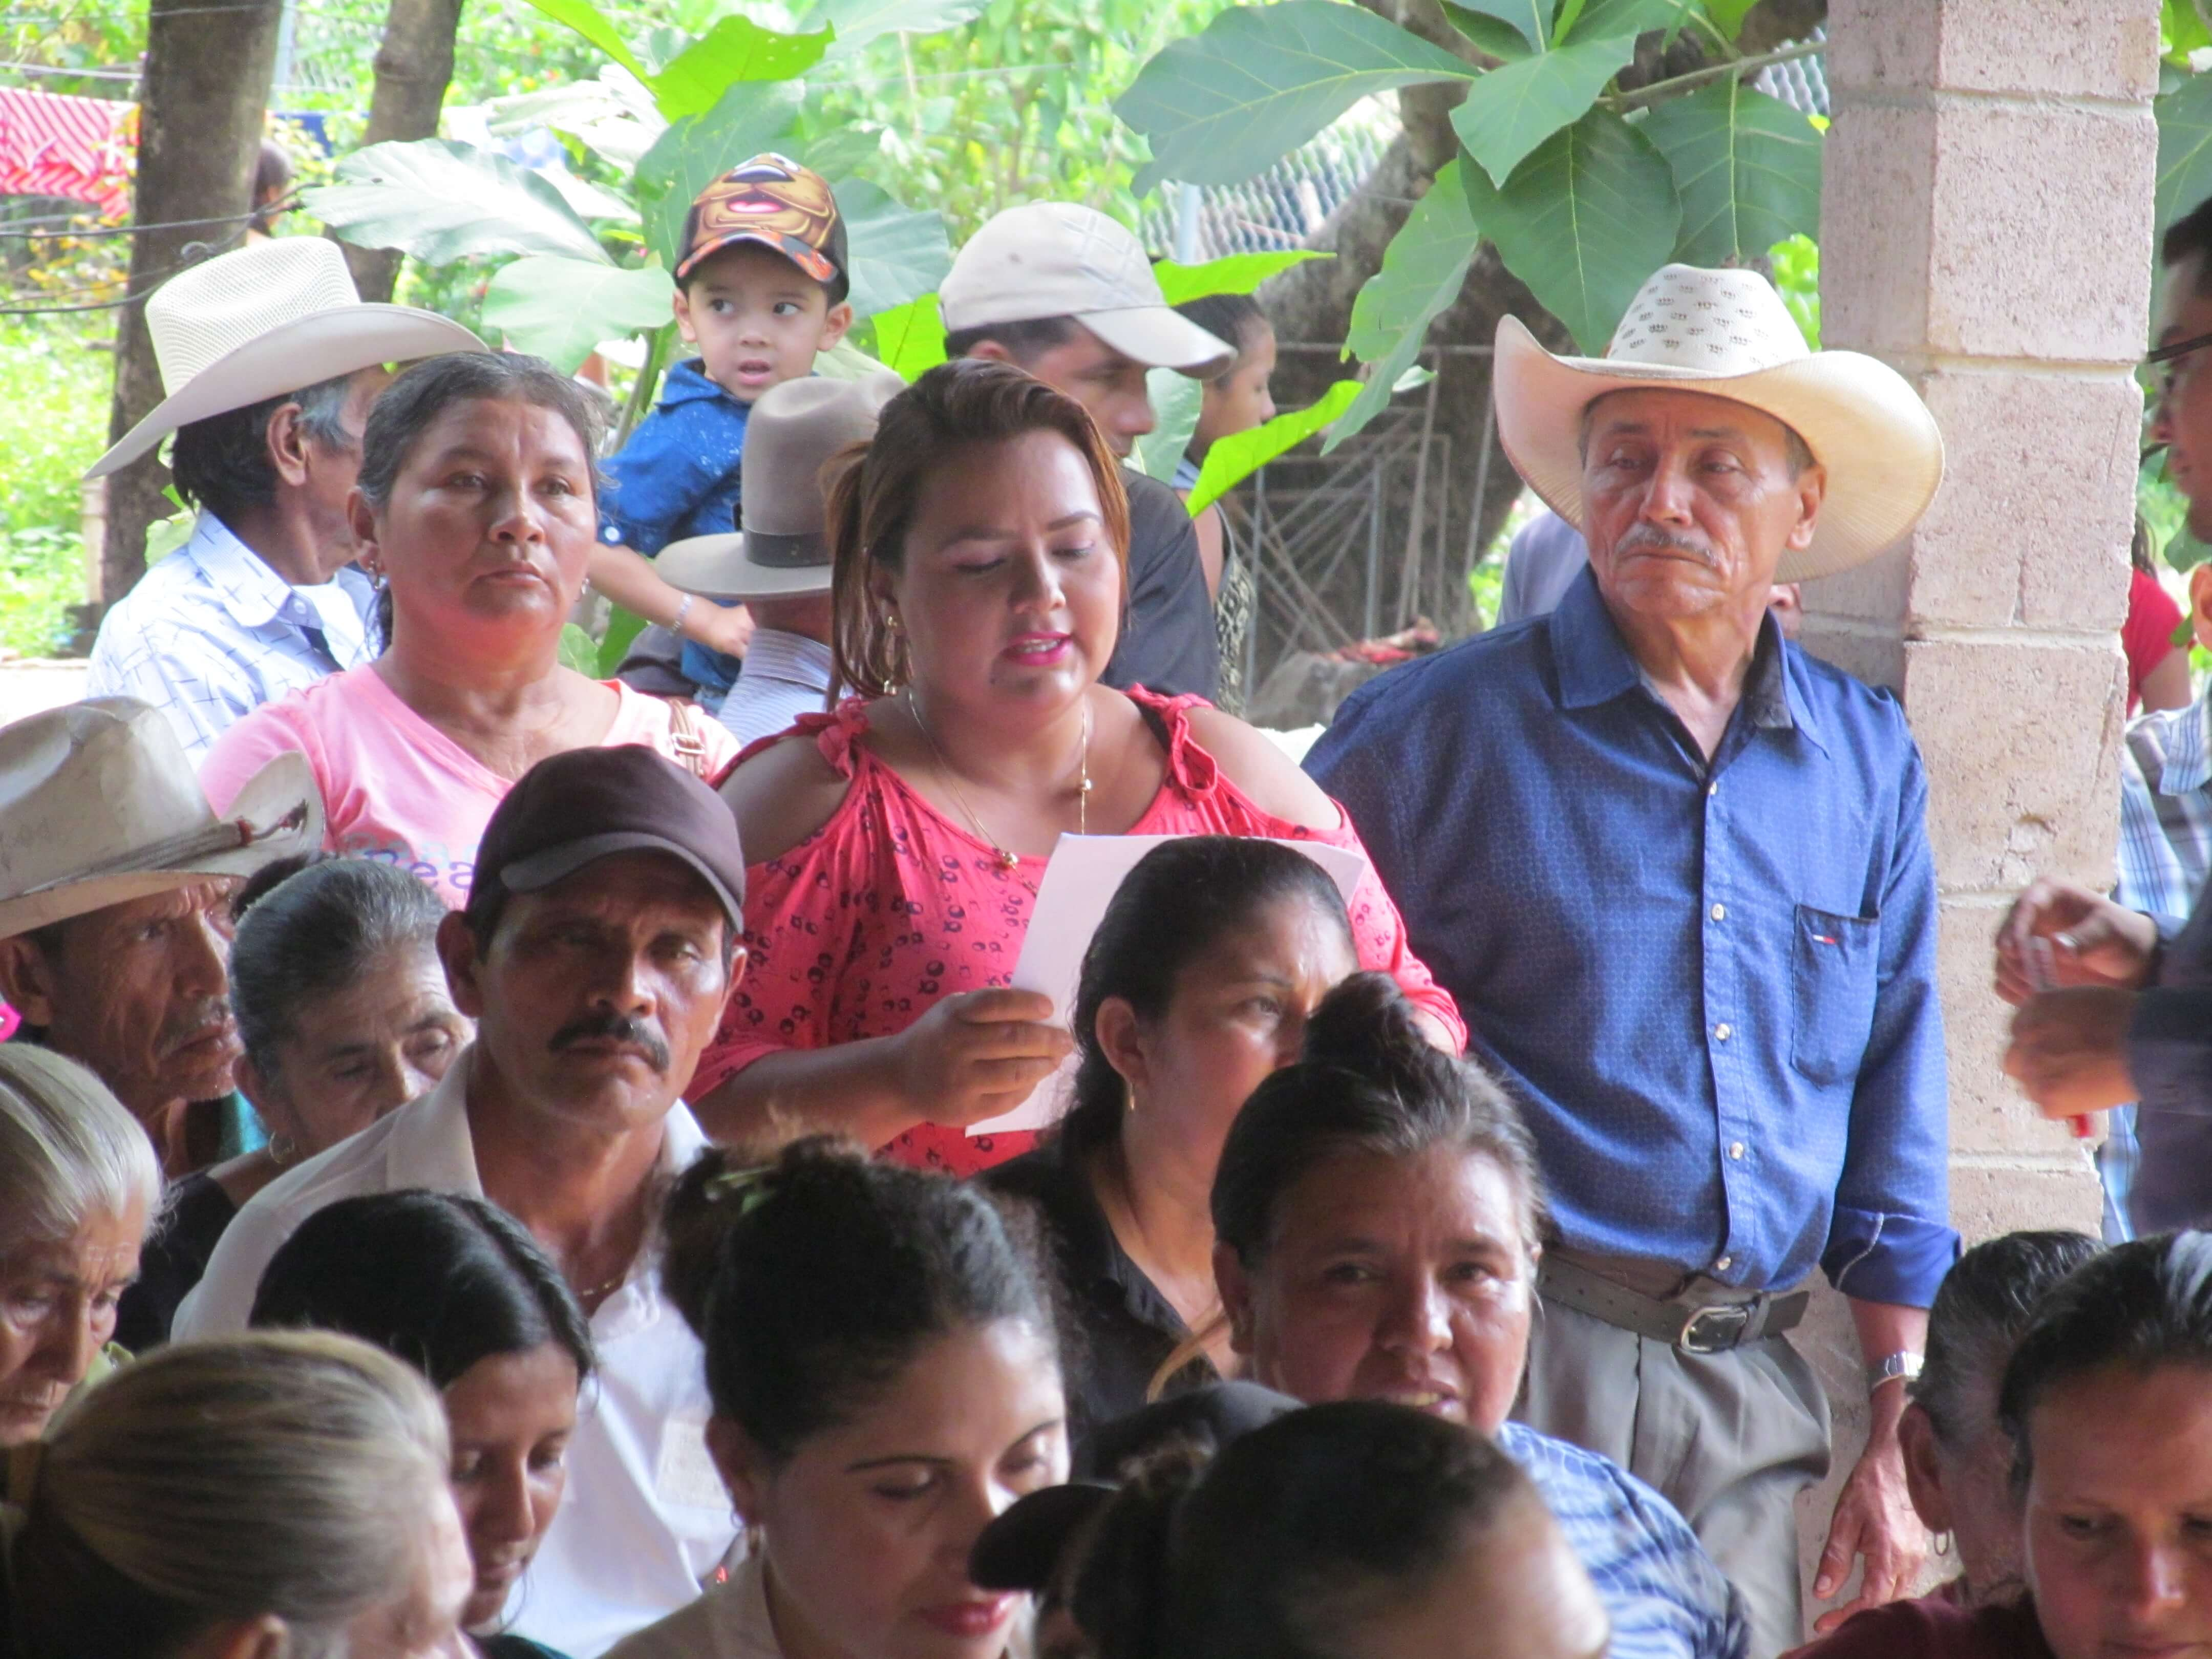 El Salvador: Tackling Land Reform, Environment, And Safety Issues In New Communities